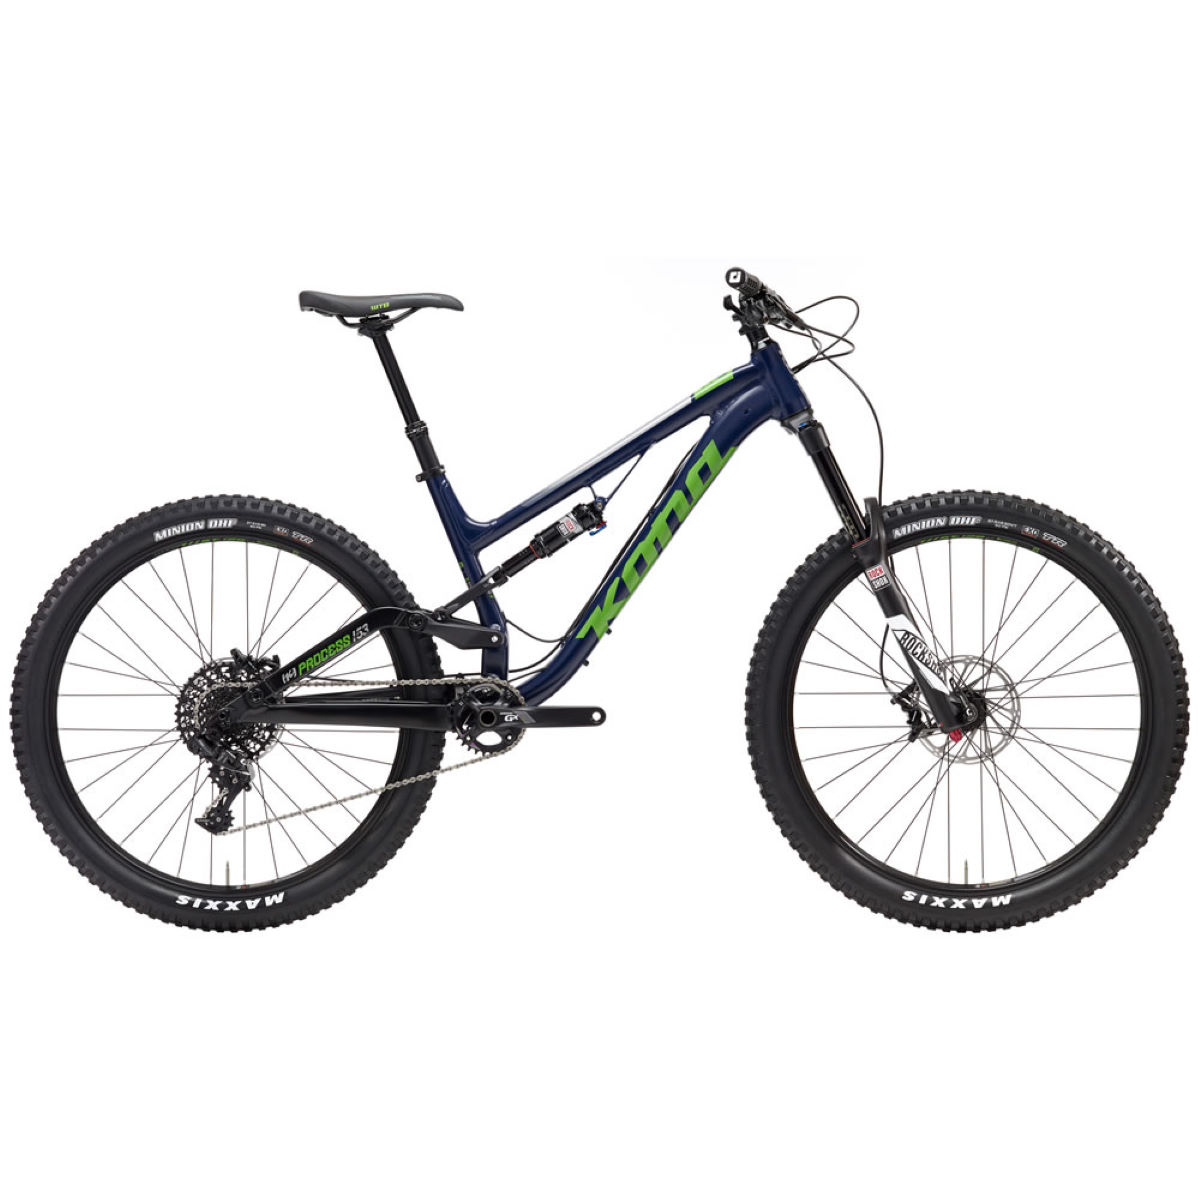 Kona Process 153 (2017) Mountain Bike   Full Suspension Mountain Bikes